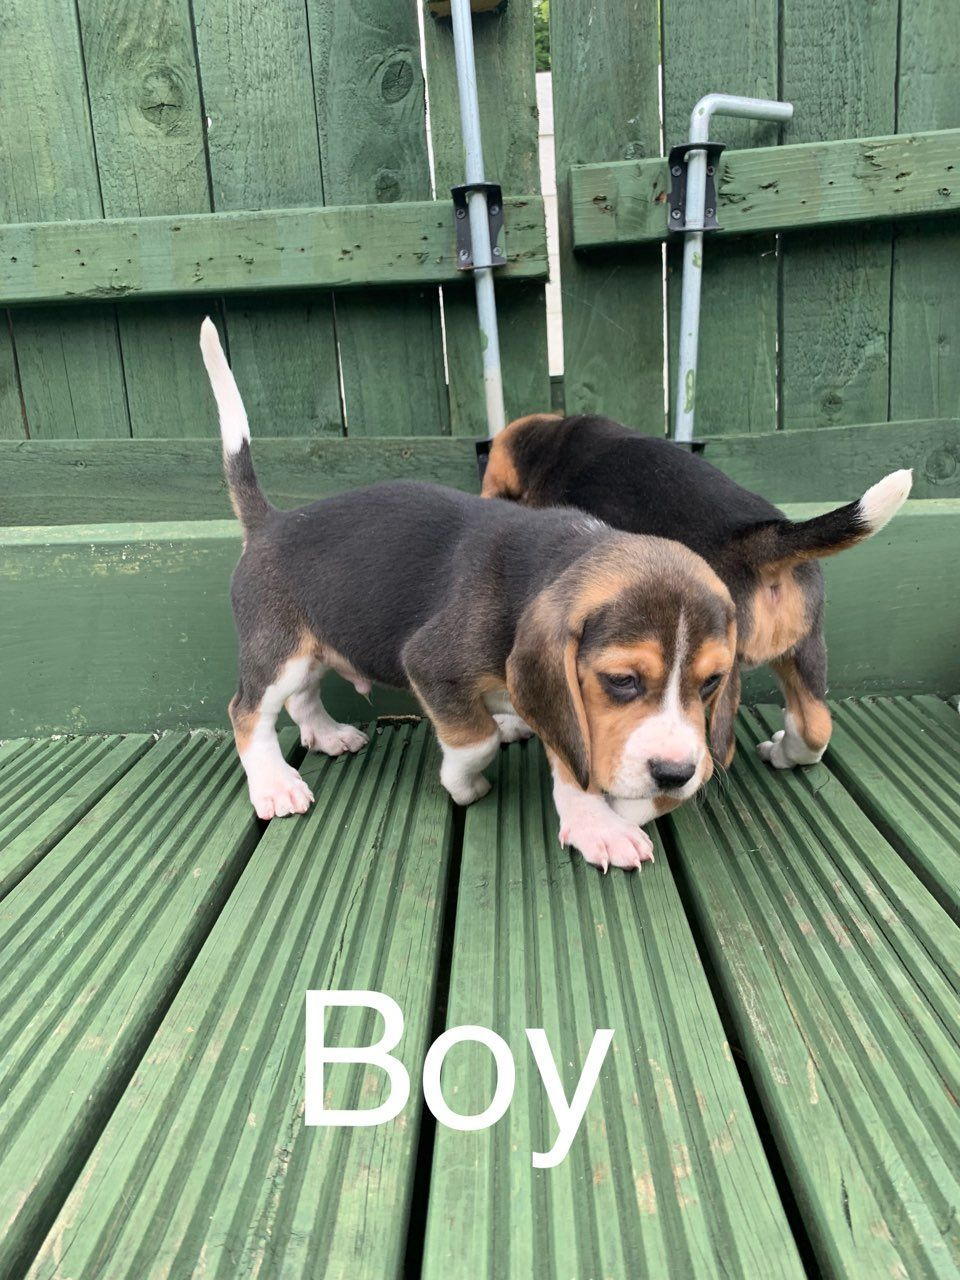 Kuwait Dogs And Puppies Adoption And Sales Email Us At Khaleelsalafi Hotmail Com Beautiful Beagle Puppies In Kuwa Beagle Puppy Puppies Most Popular Dog Breeds